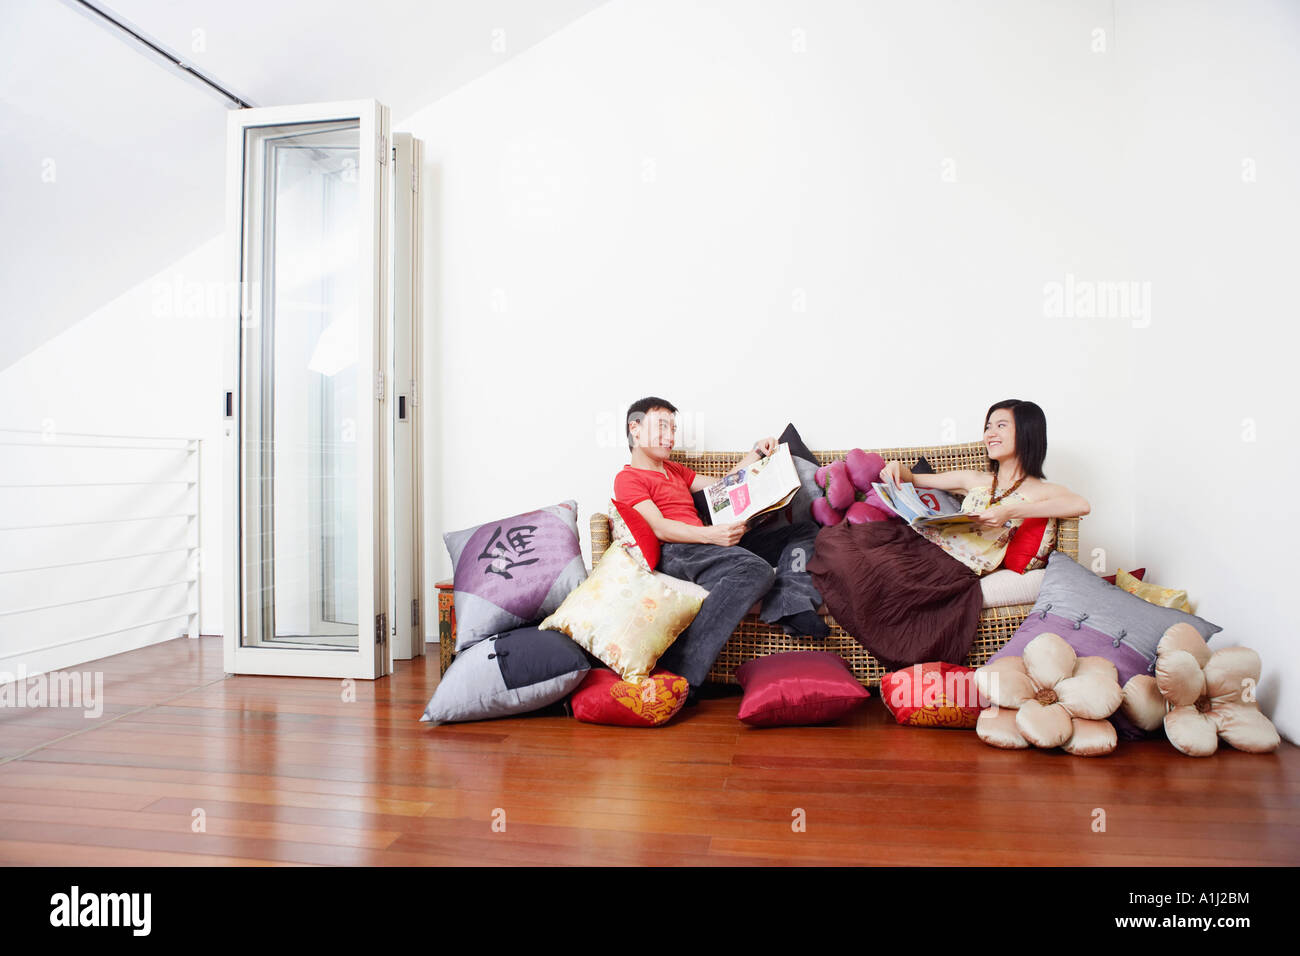 Side profile of a mid adult man with a young woman reclining on a couch and looking at each other Stock Photo